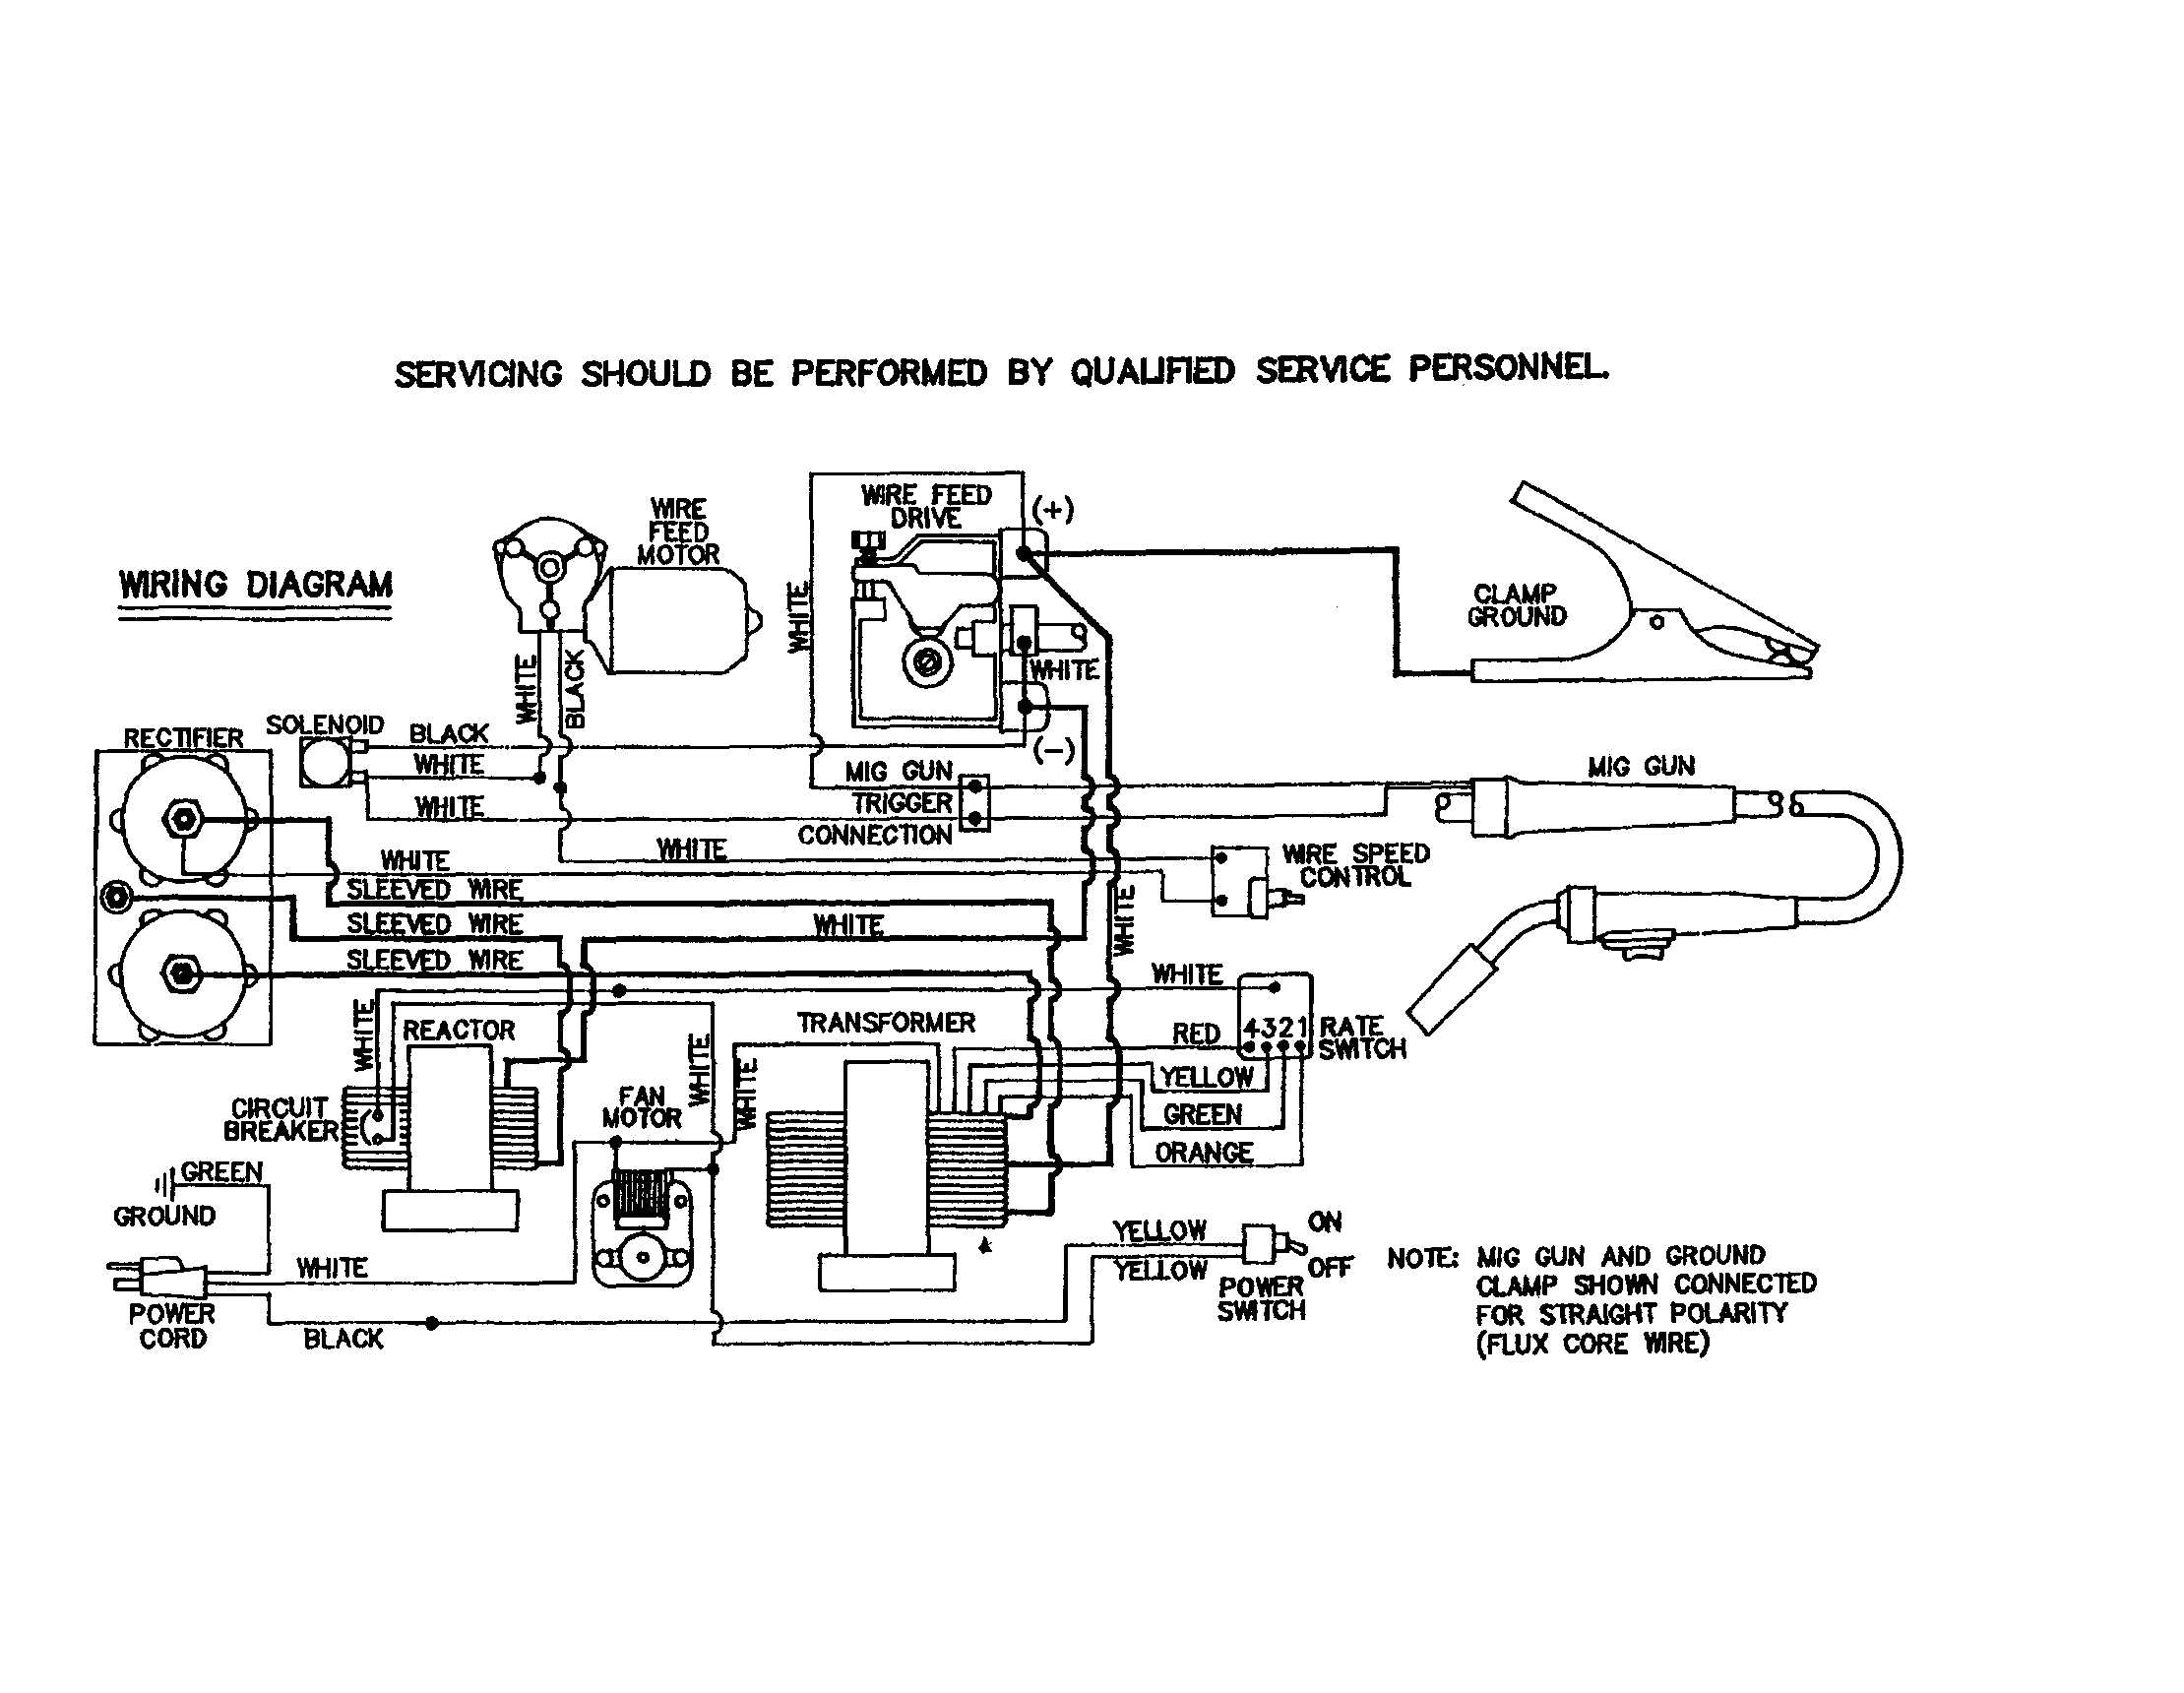 new modra generator wiring diagram diagram diagramsample diagramtemplate spot welder garage workshop [ 2219 x 1720 Pixel ]